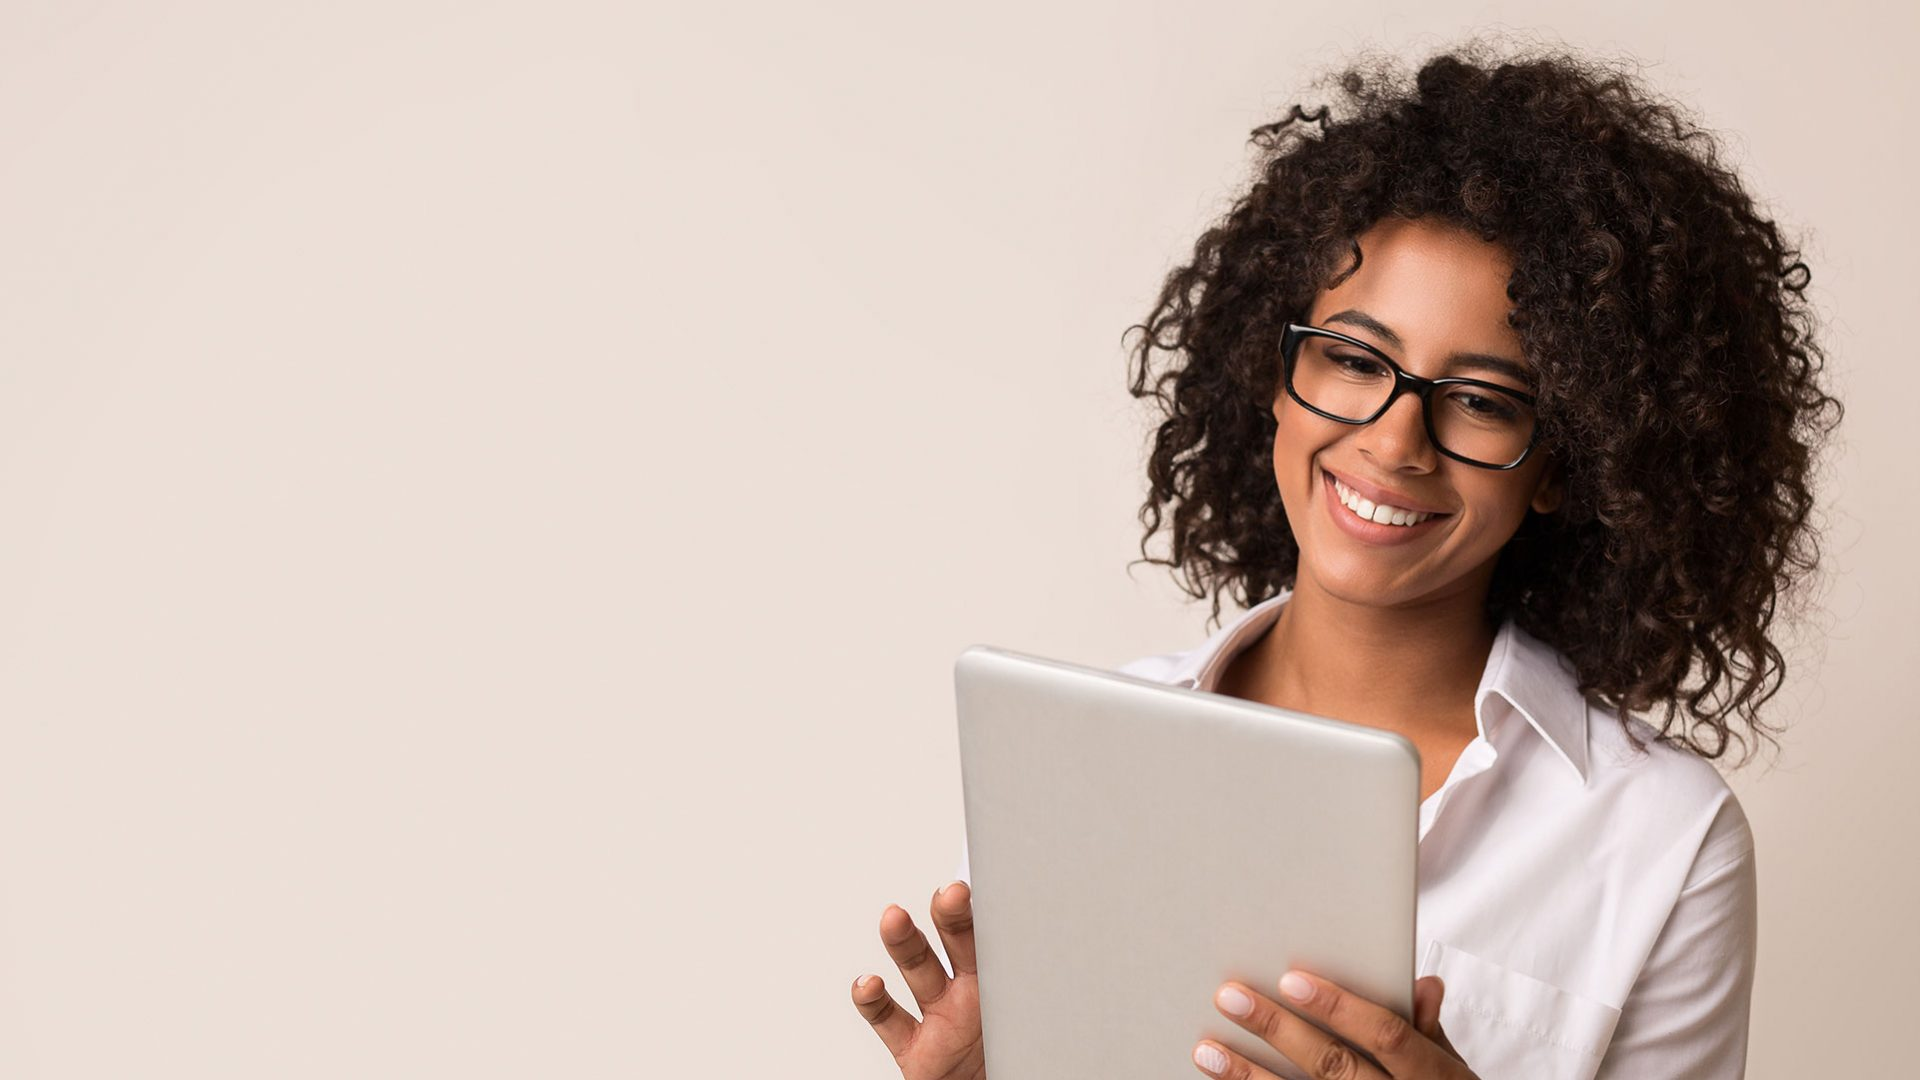 woman holding a tablet and smiling